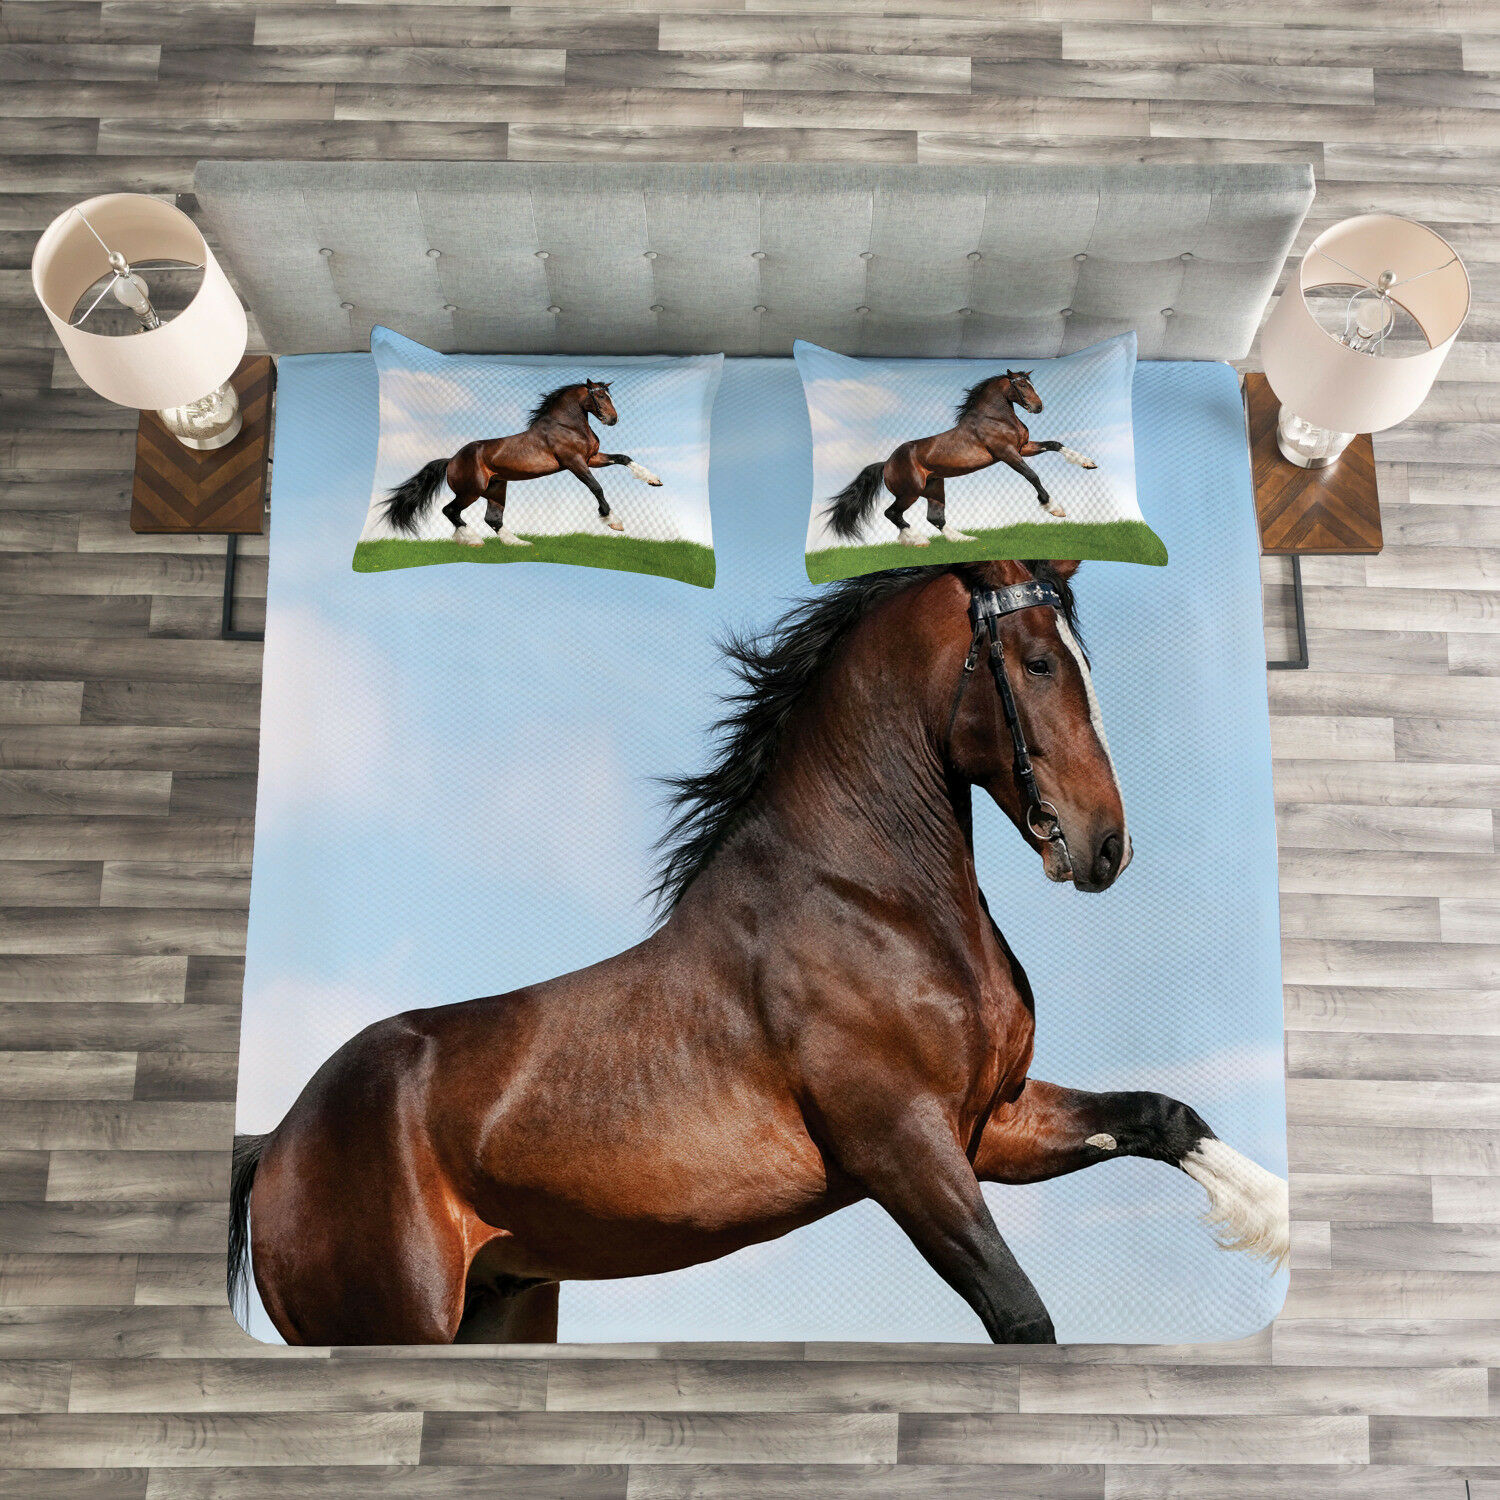 Nature Quilted Bedspread & Pillow Shams Set, Horse Pacing on Grass Print